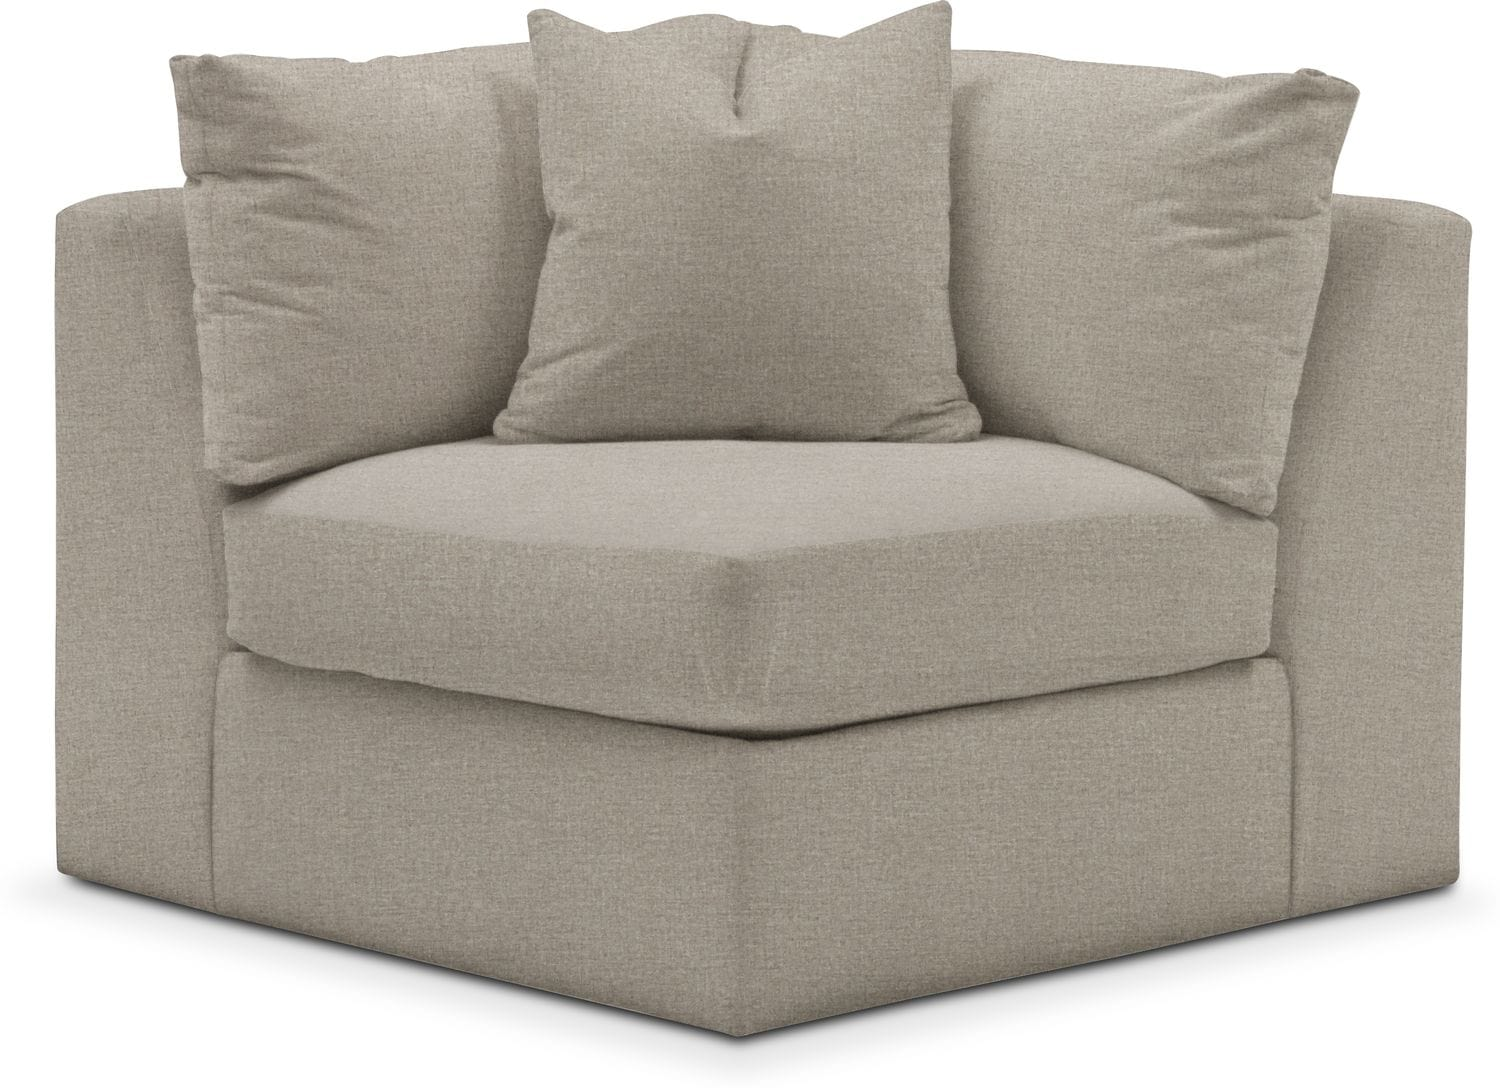 Living Room Furniture - Collin Performance Corner Chair